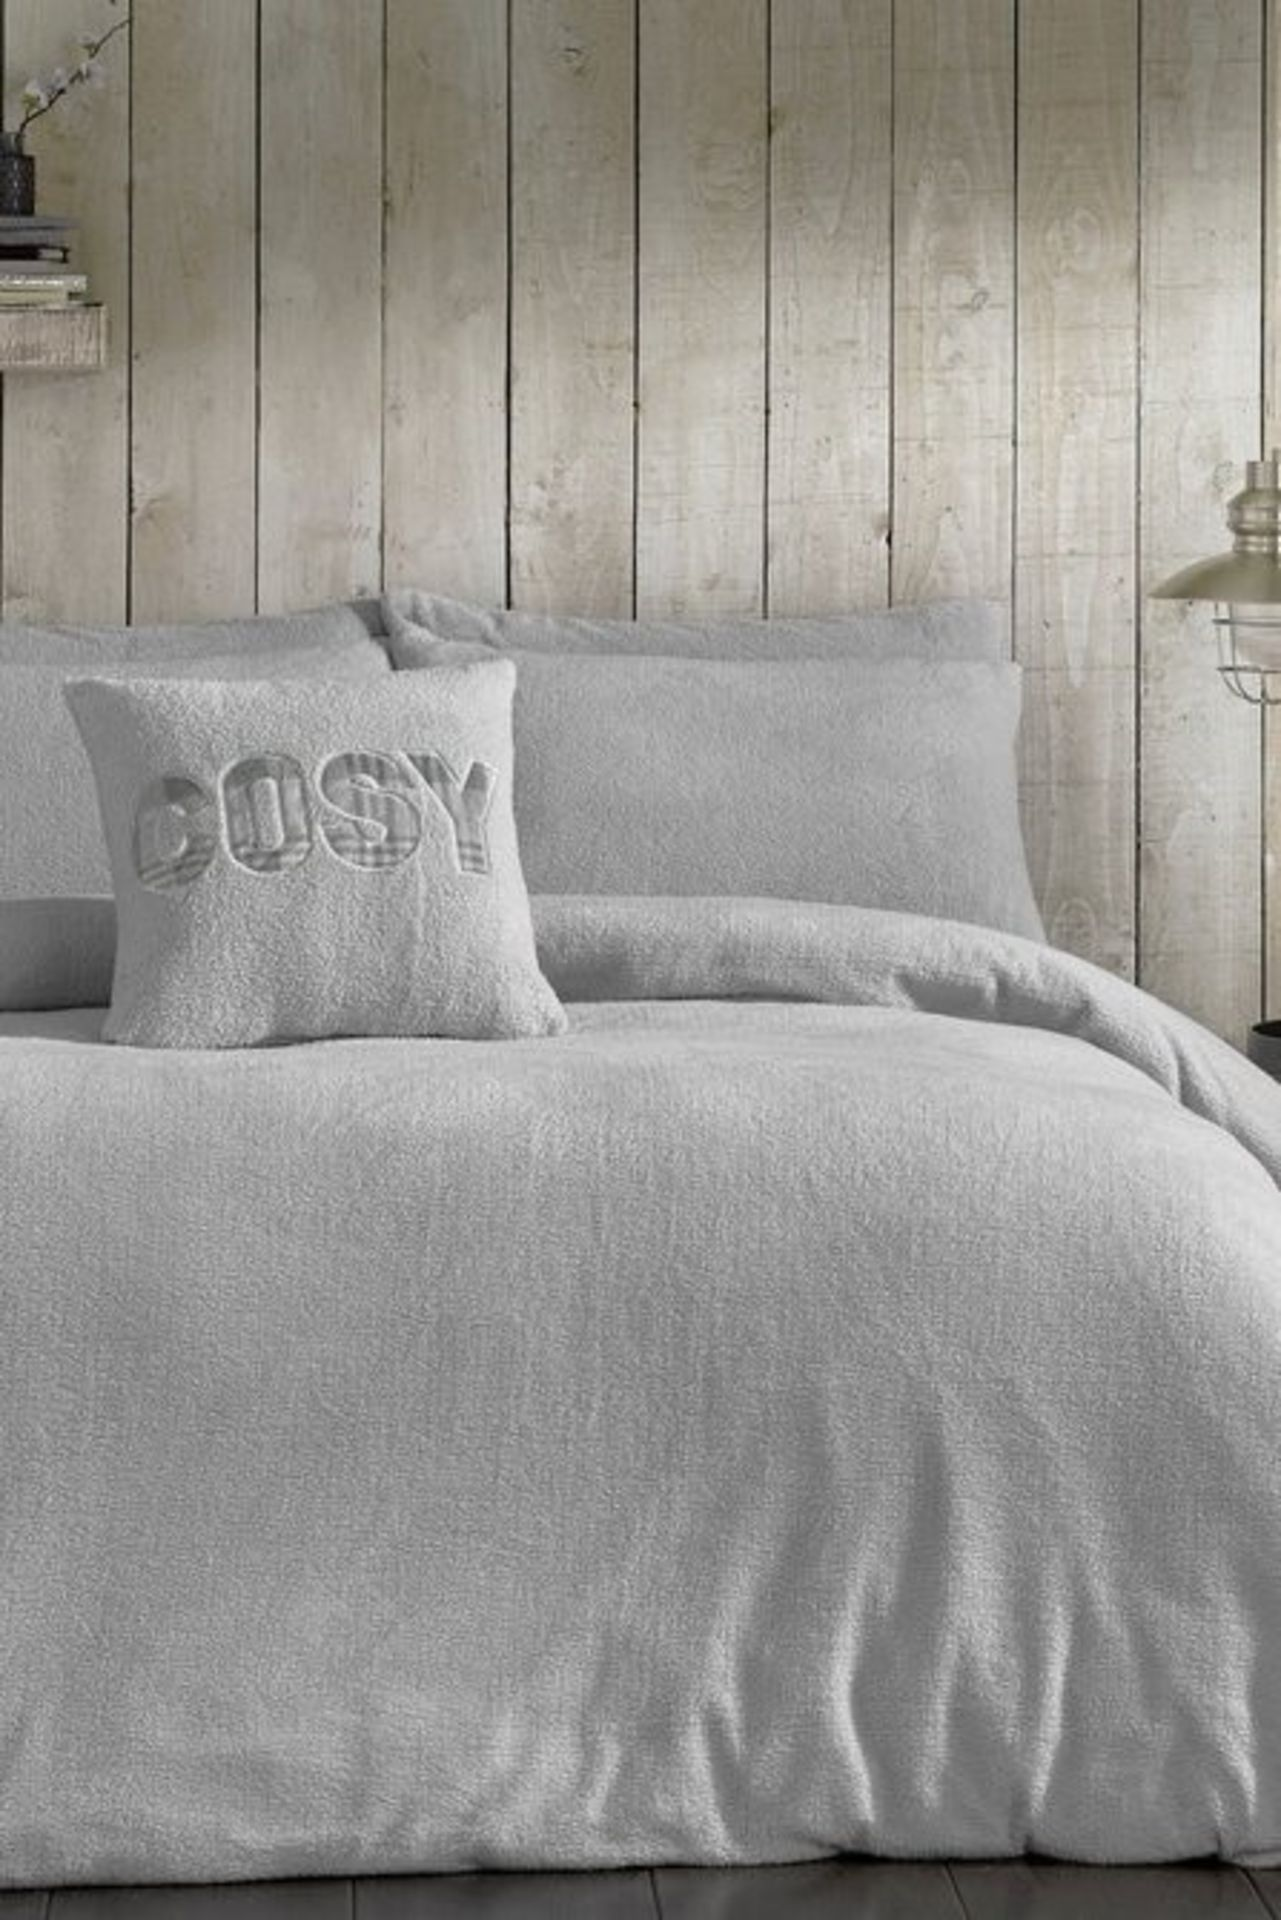 Lot 25 - 1 BAGGED COSY TEDDY PAIR OF PILLOWCASES IN SILVER GREY / RRP £19.99 (PUBLIC VIEWING AVAILABLE)